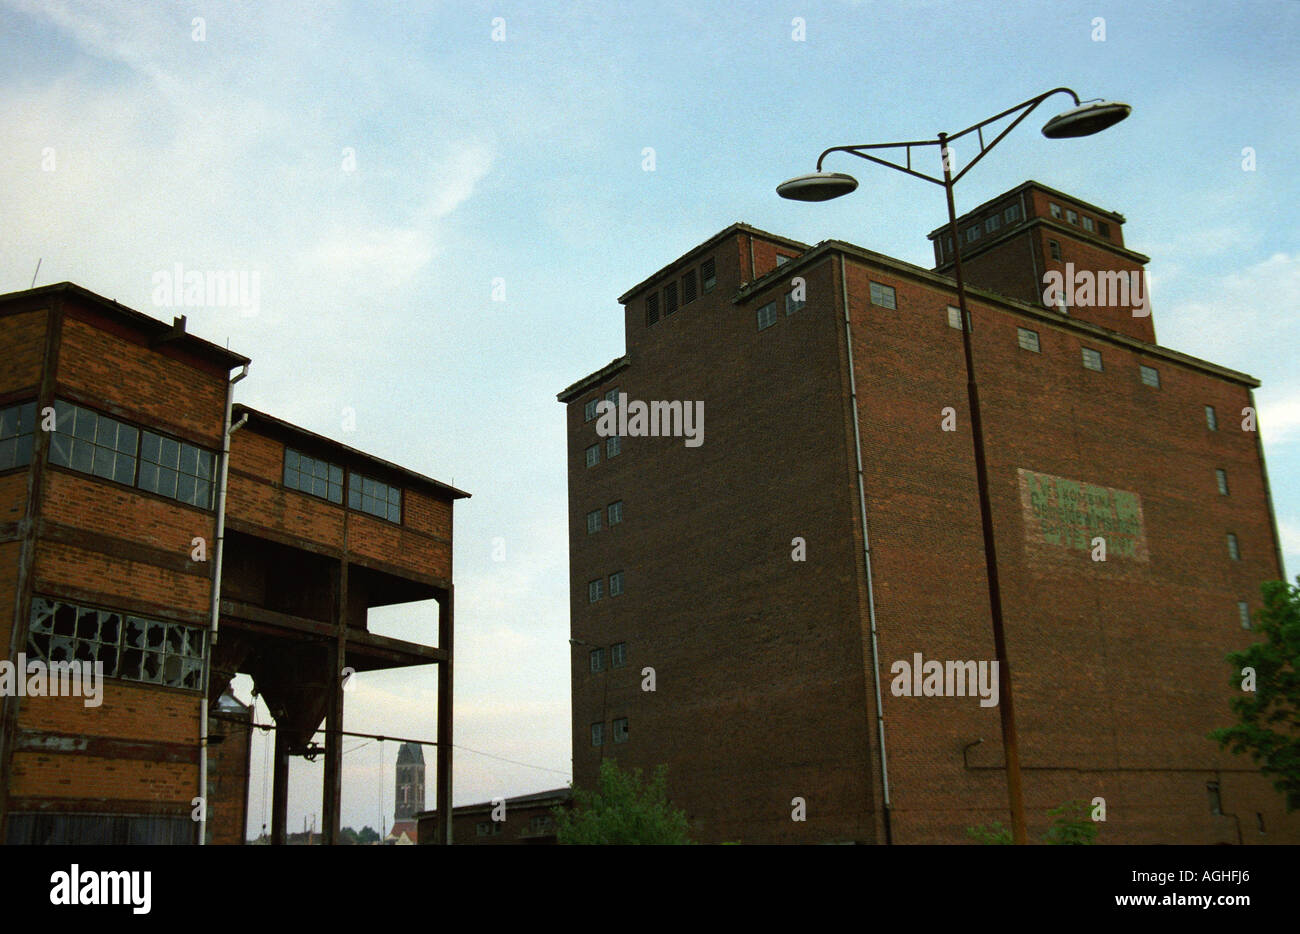 Exterior of building low angle view Wismar Germany - Stock Image